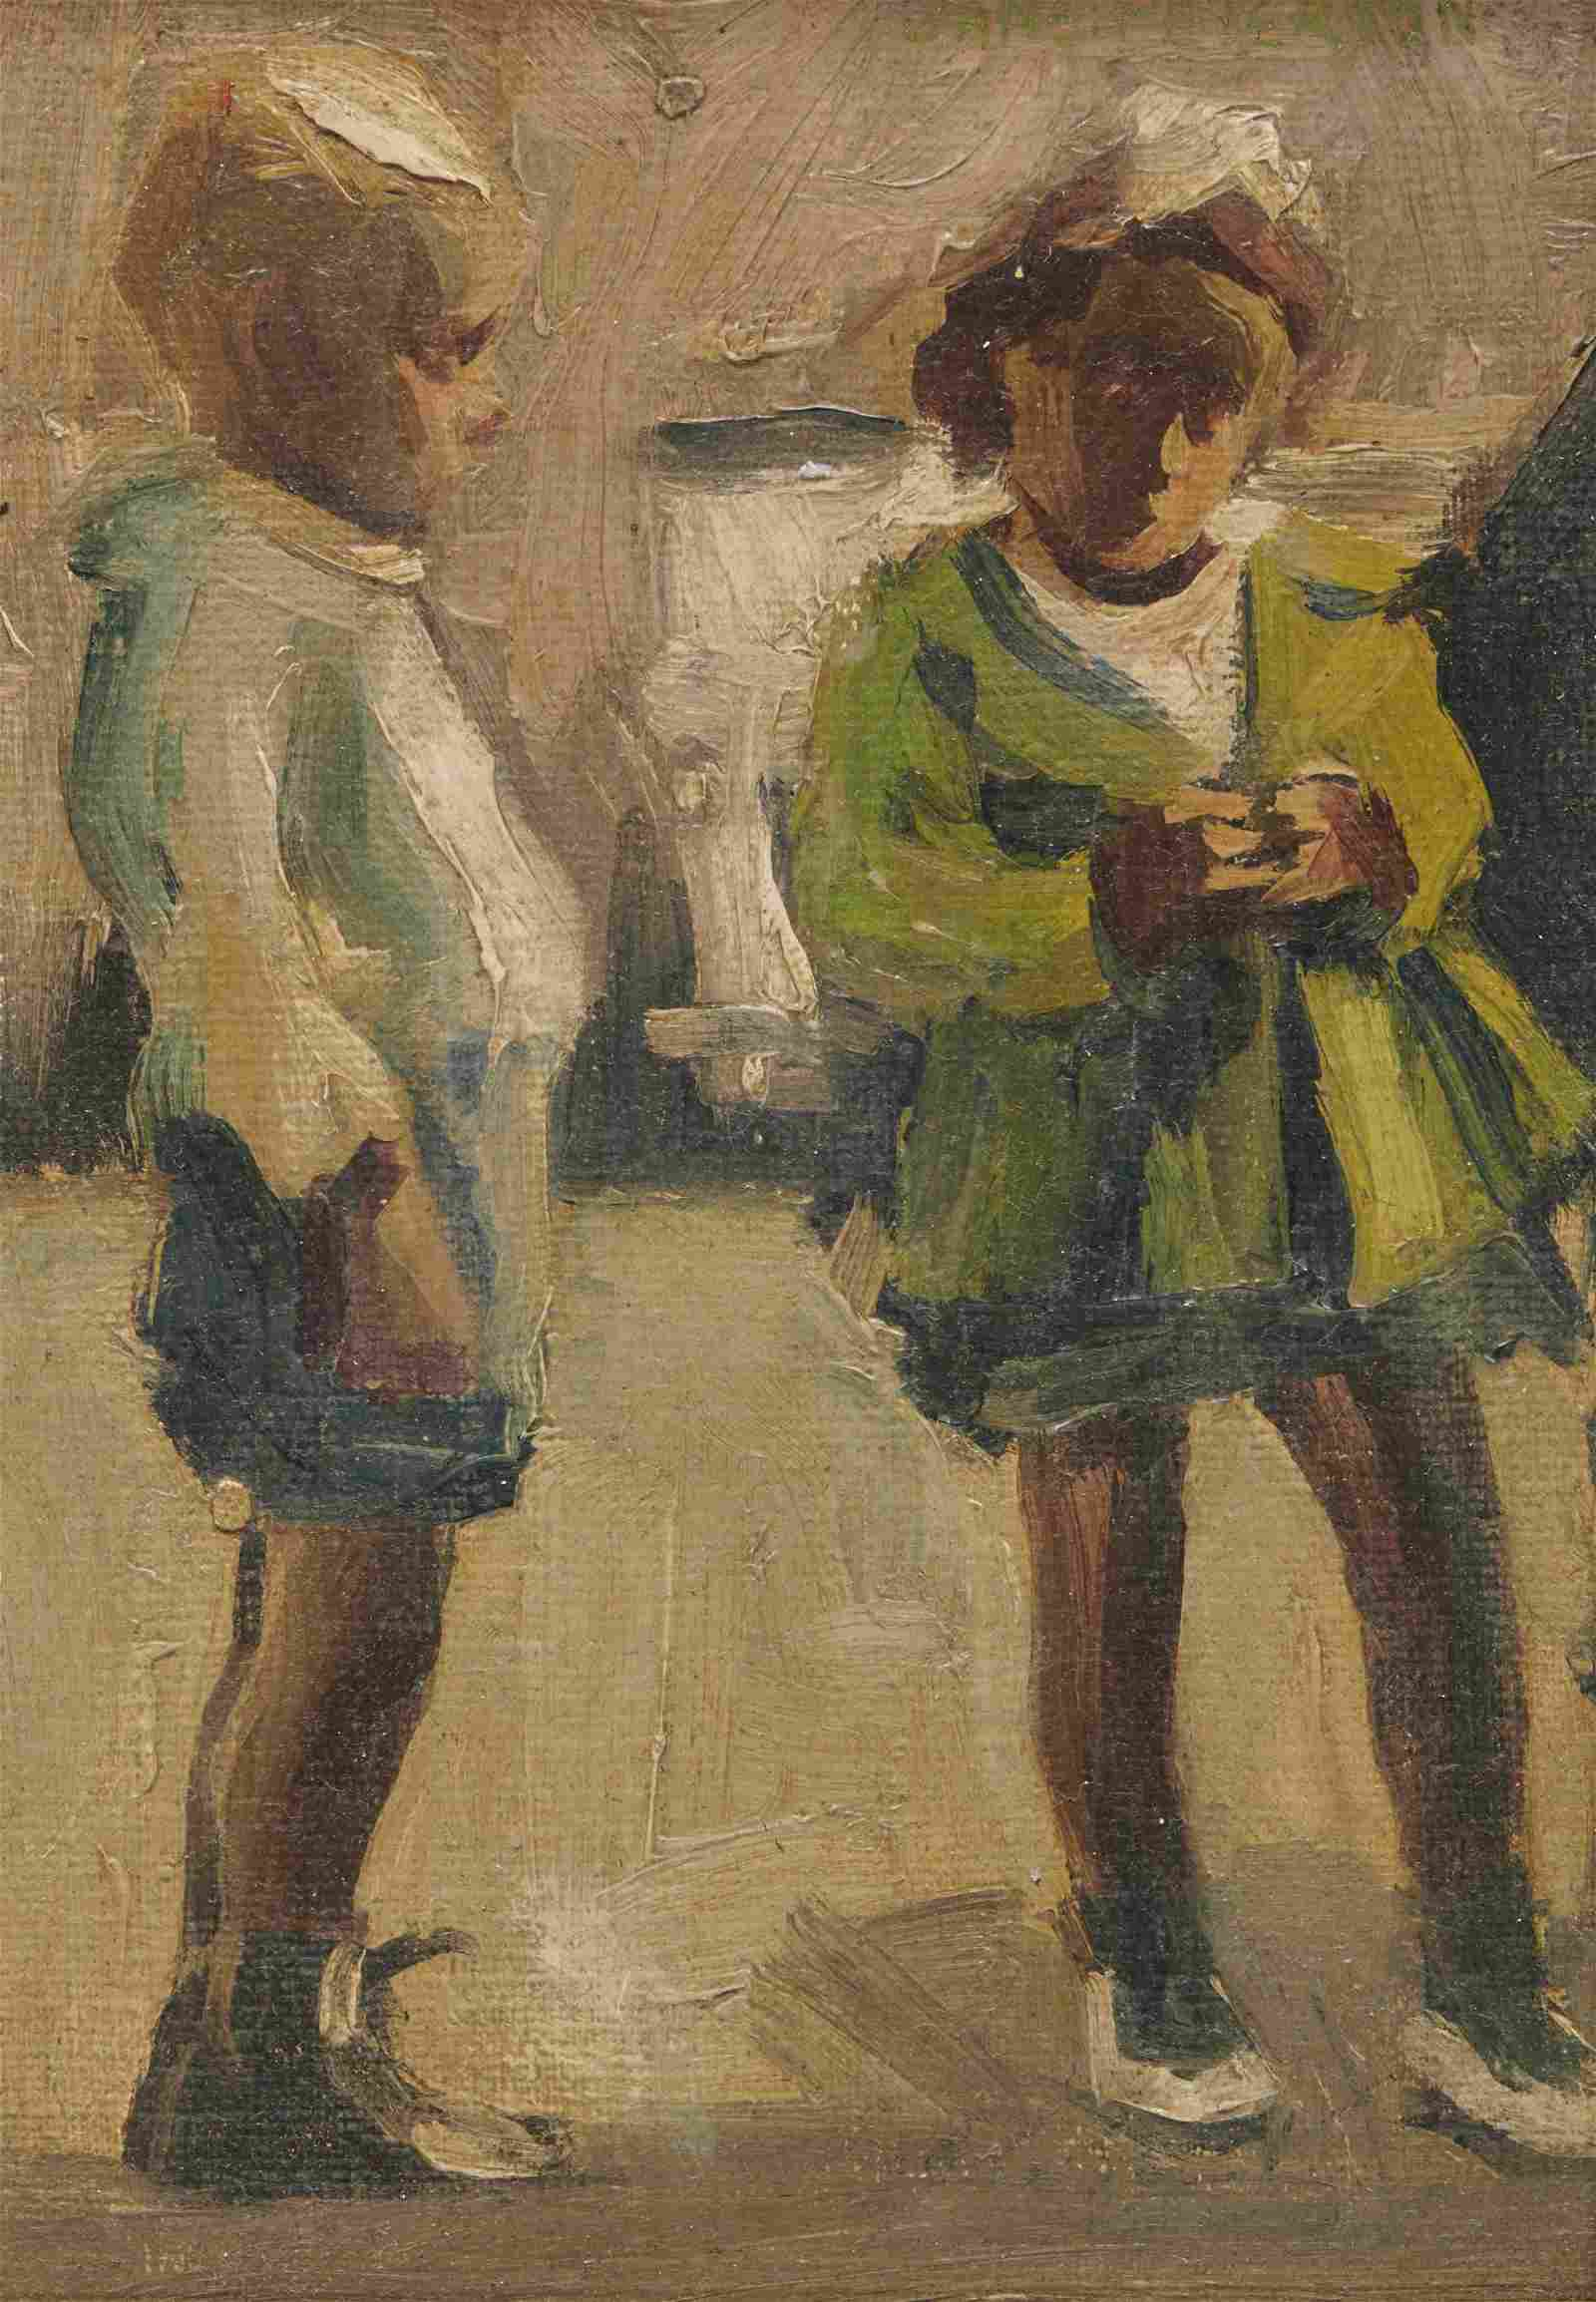 JANE PETERSON, (American, 1876-1965), Two Children, oil